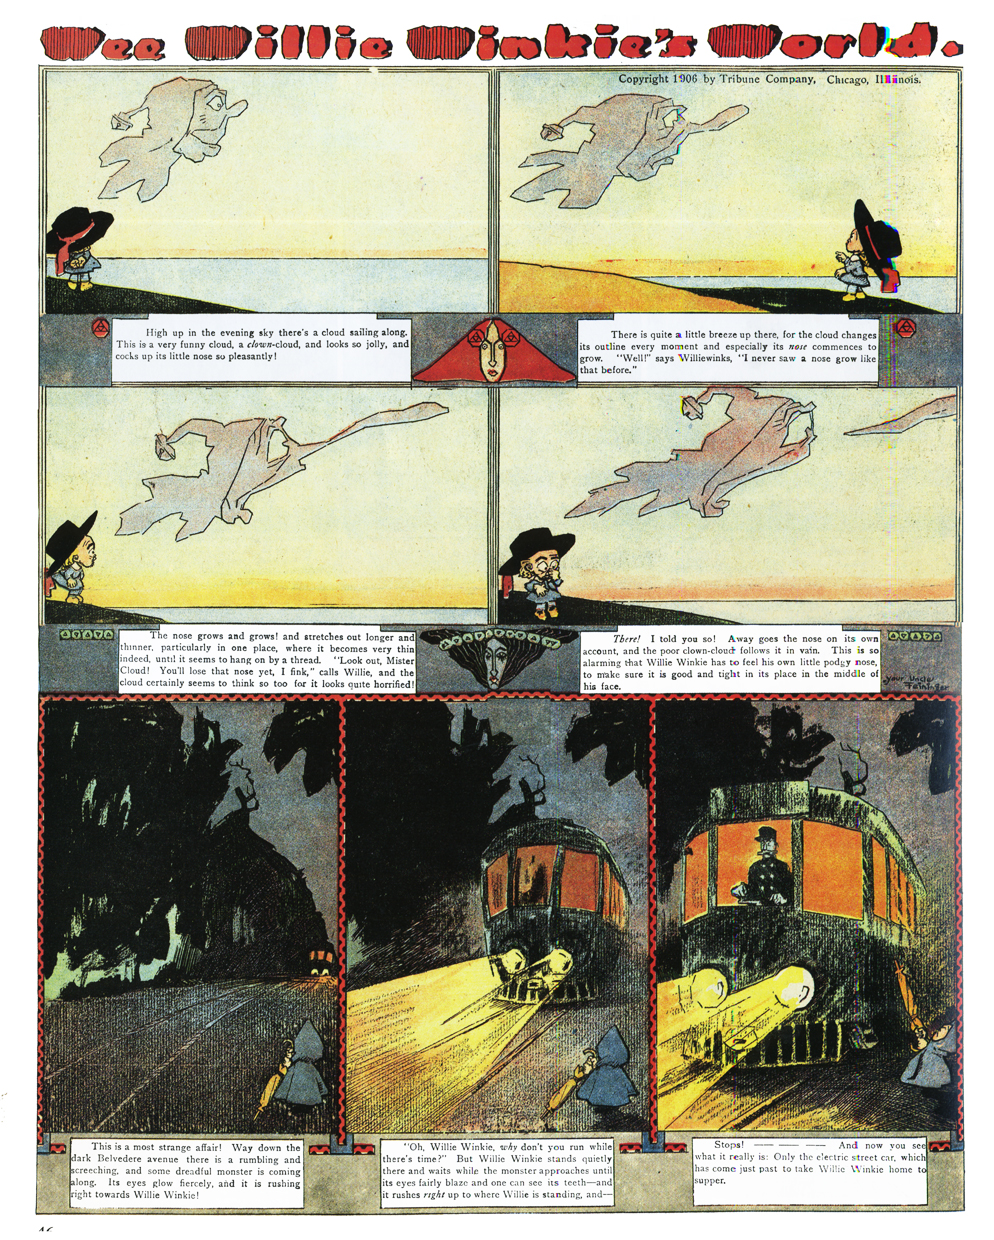 Art comic feininger lyonel strip